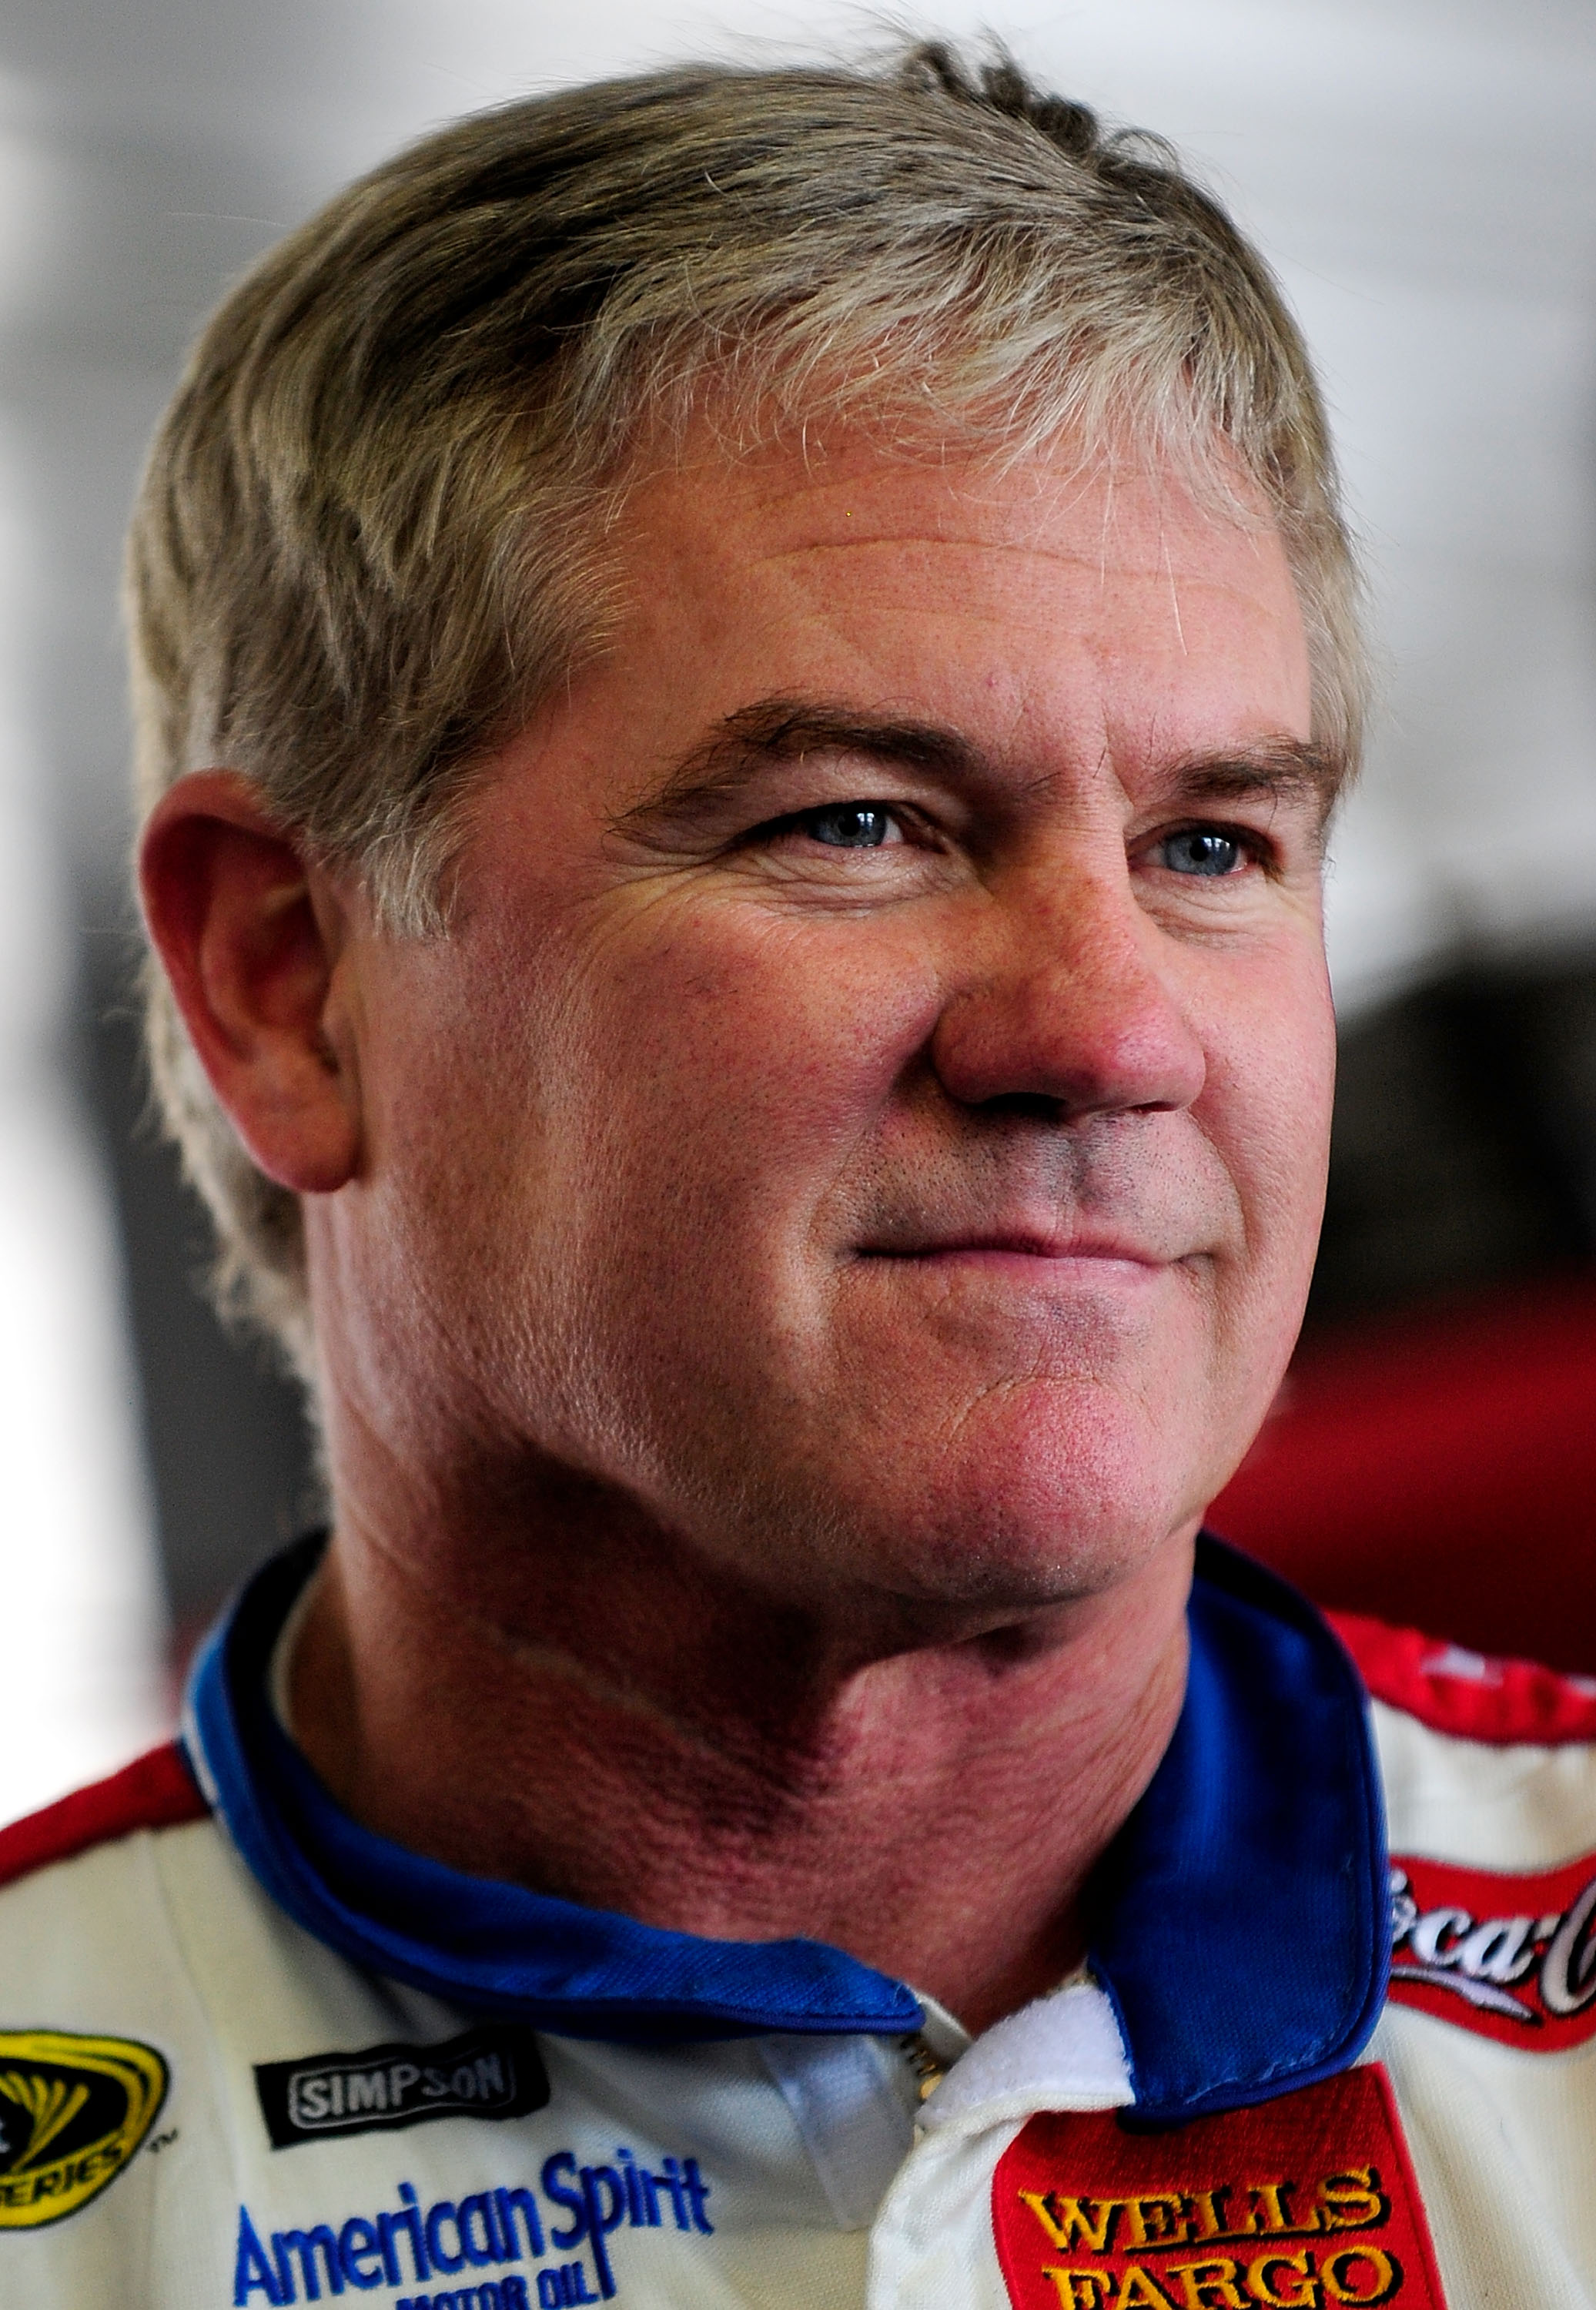 LONG POND, PA - MAY 28:  Terry LaBonte, driver of the #45 Petty Enterprises Dodge looks on as his crew makes adjustments to his car during NASCAR Sprint Cup testing at Pocono Raceway on May 28, 2008 in Long Pond, Pennsylvania.  (Photo by Rusty Jarrett/Get